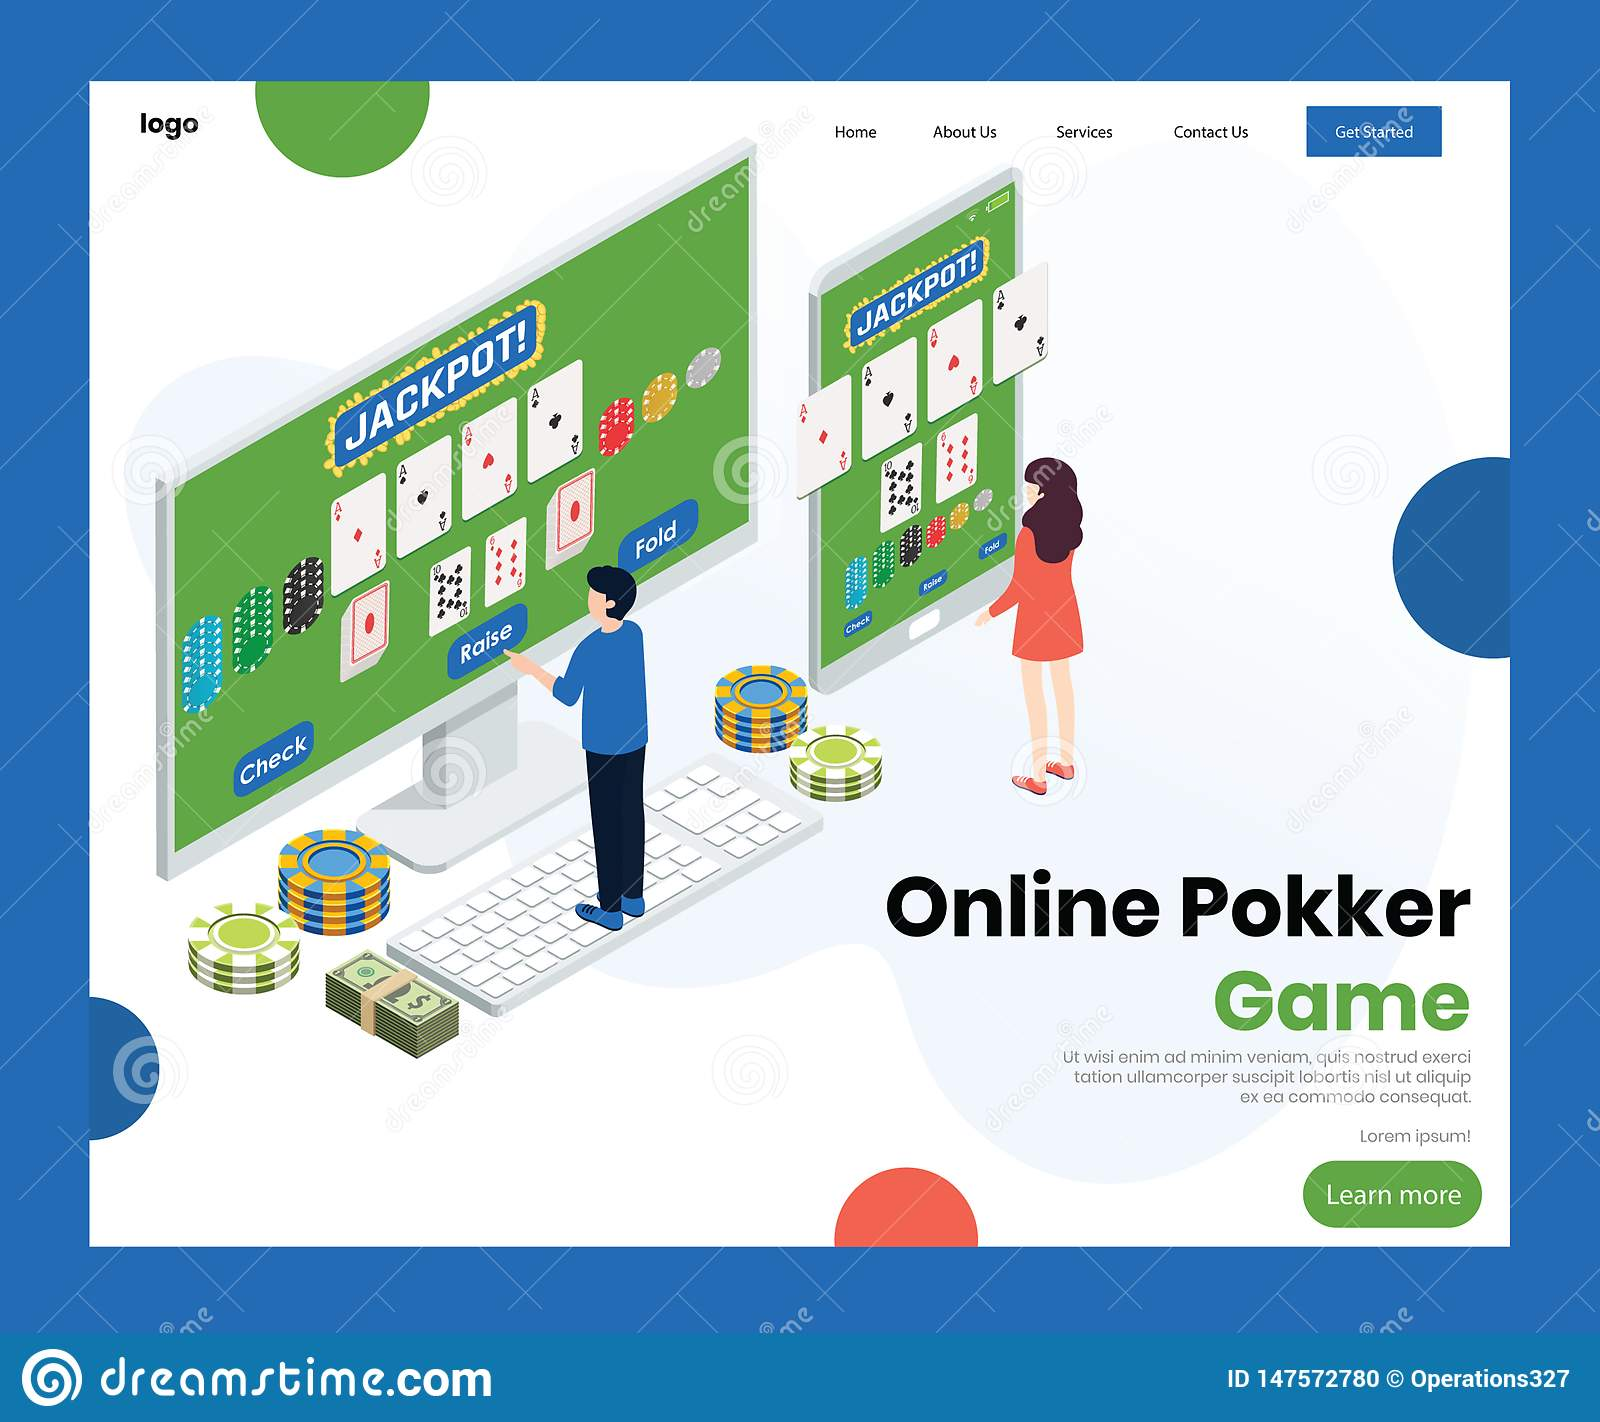 People playing Online Poker Game Isometric Artwork Concept